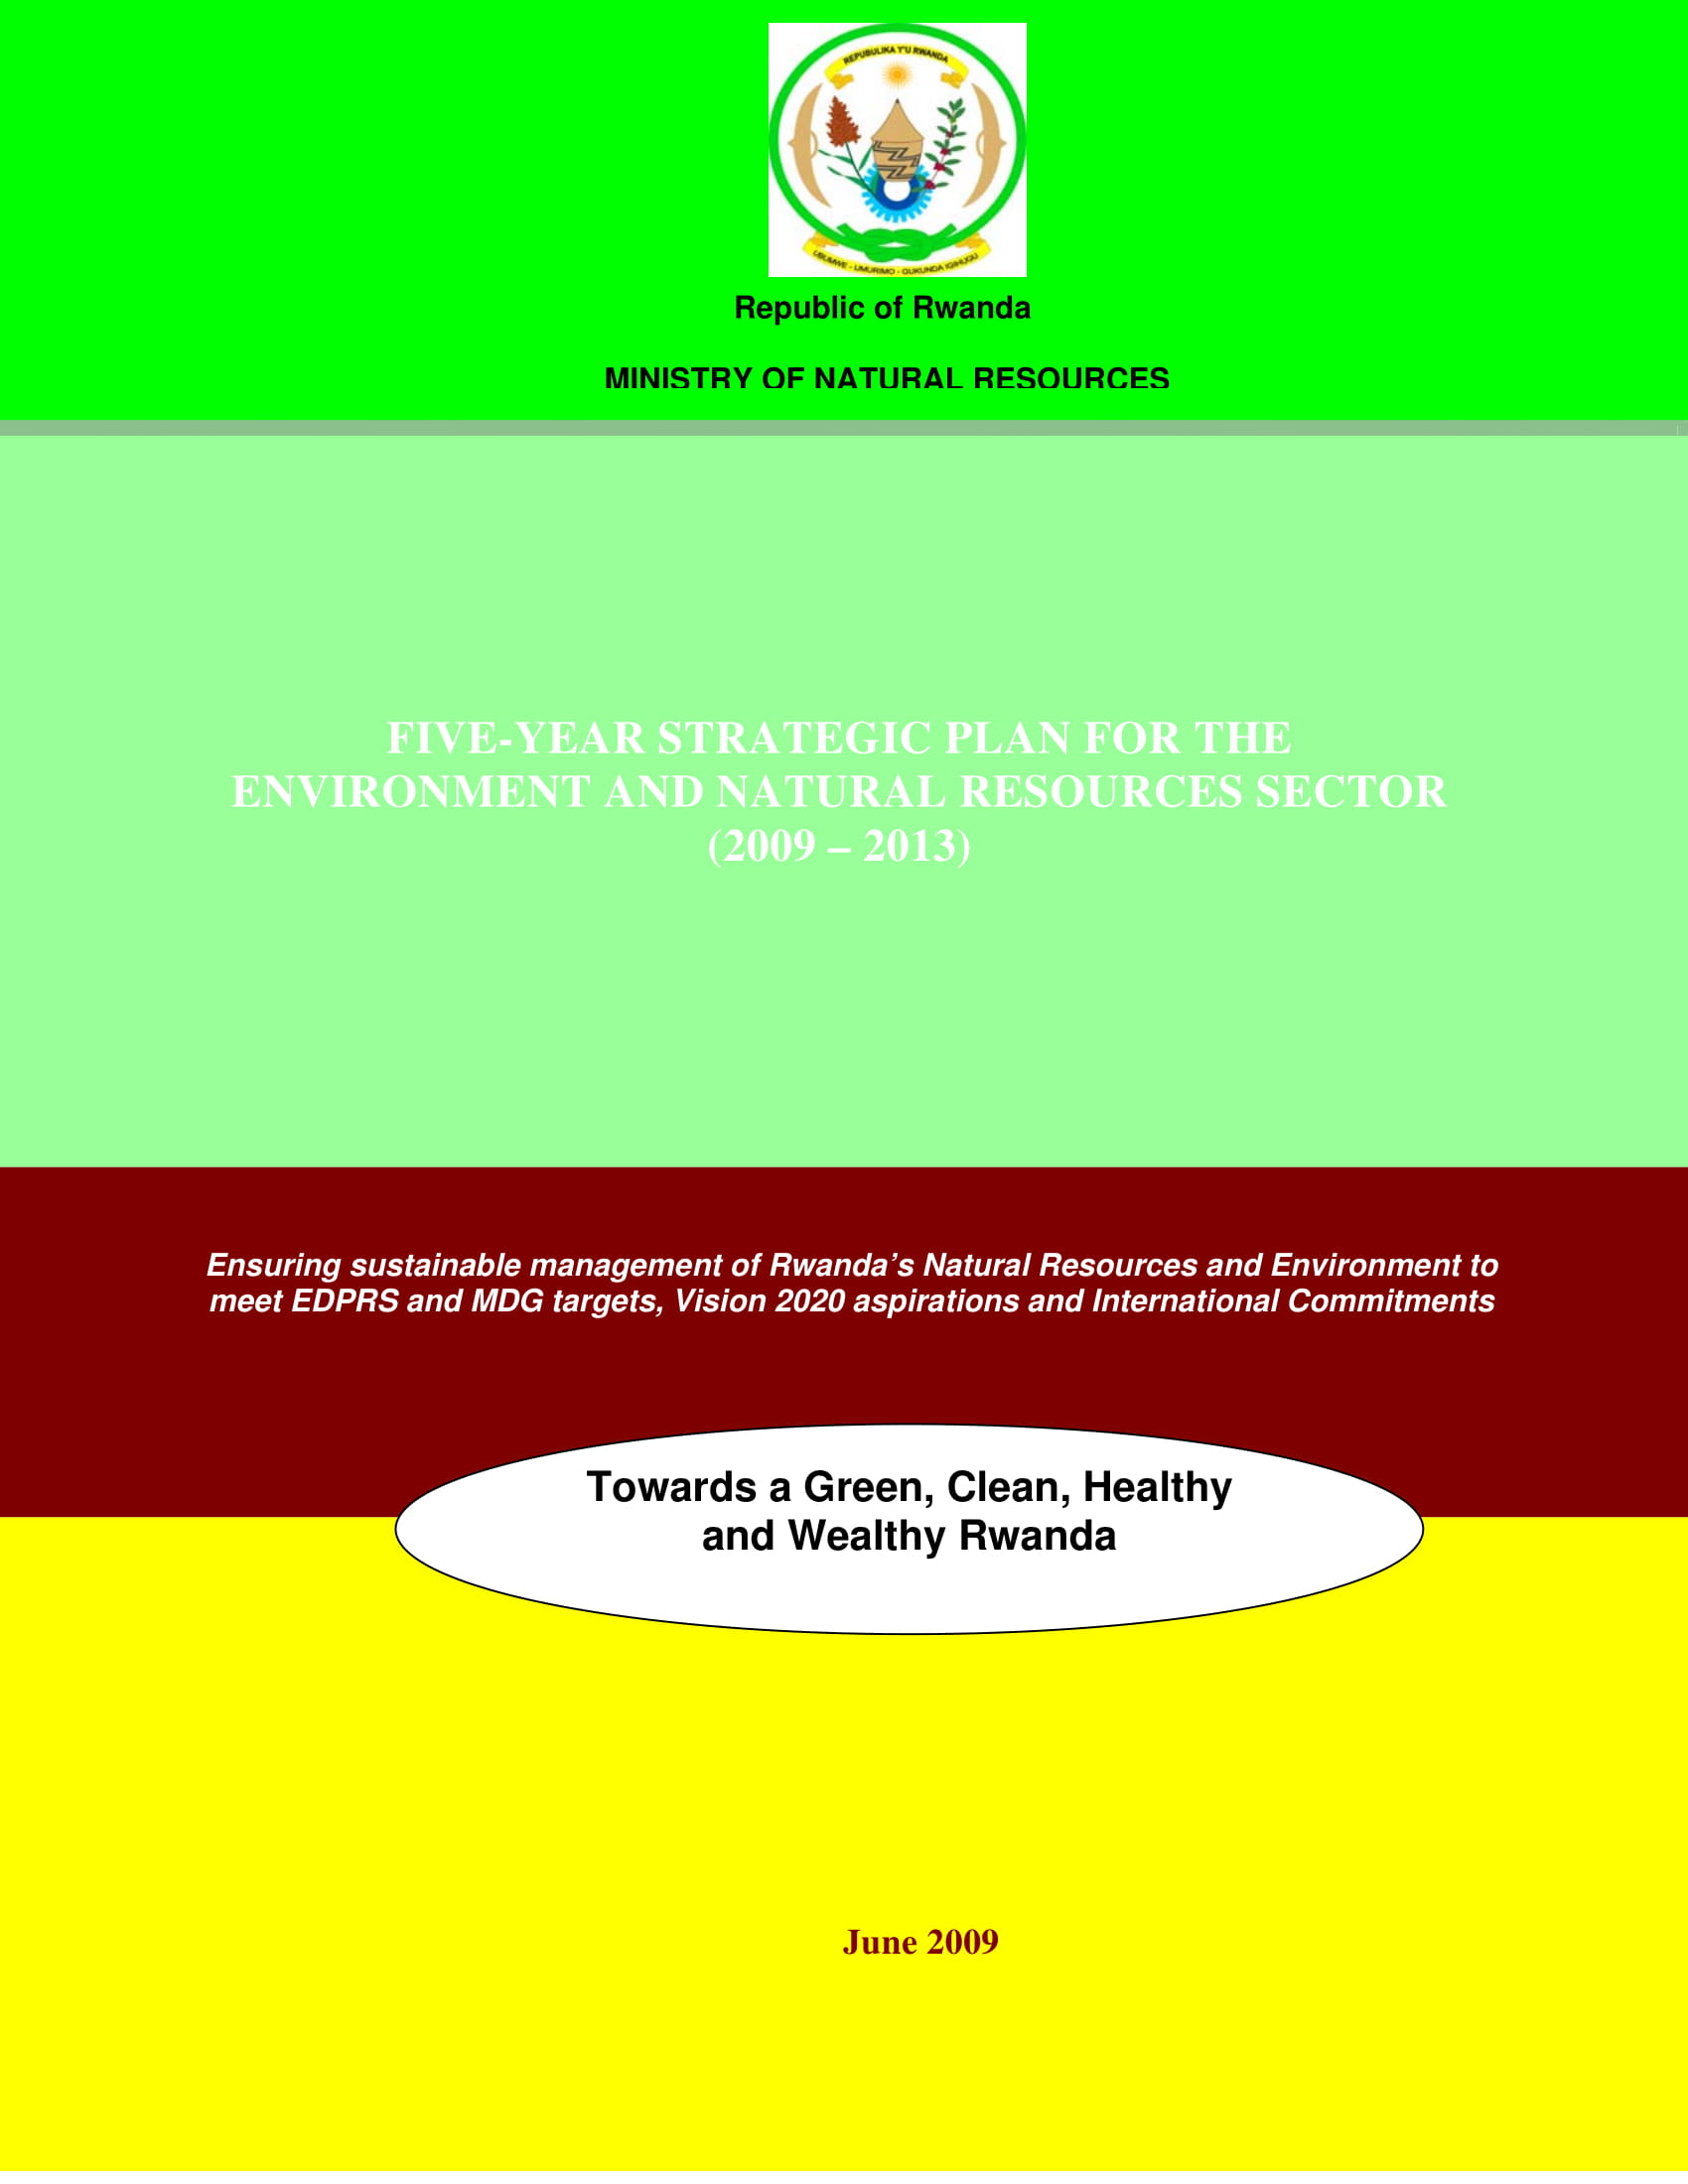 5 year strategic plan for the environment and natural resources sector example 01